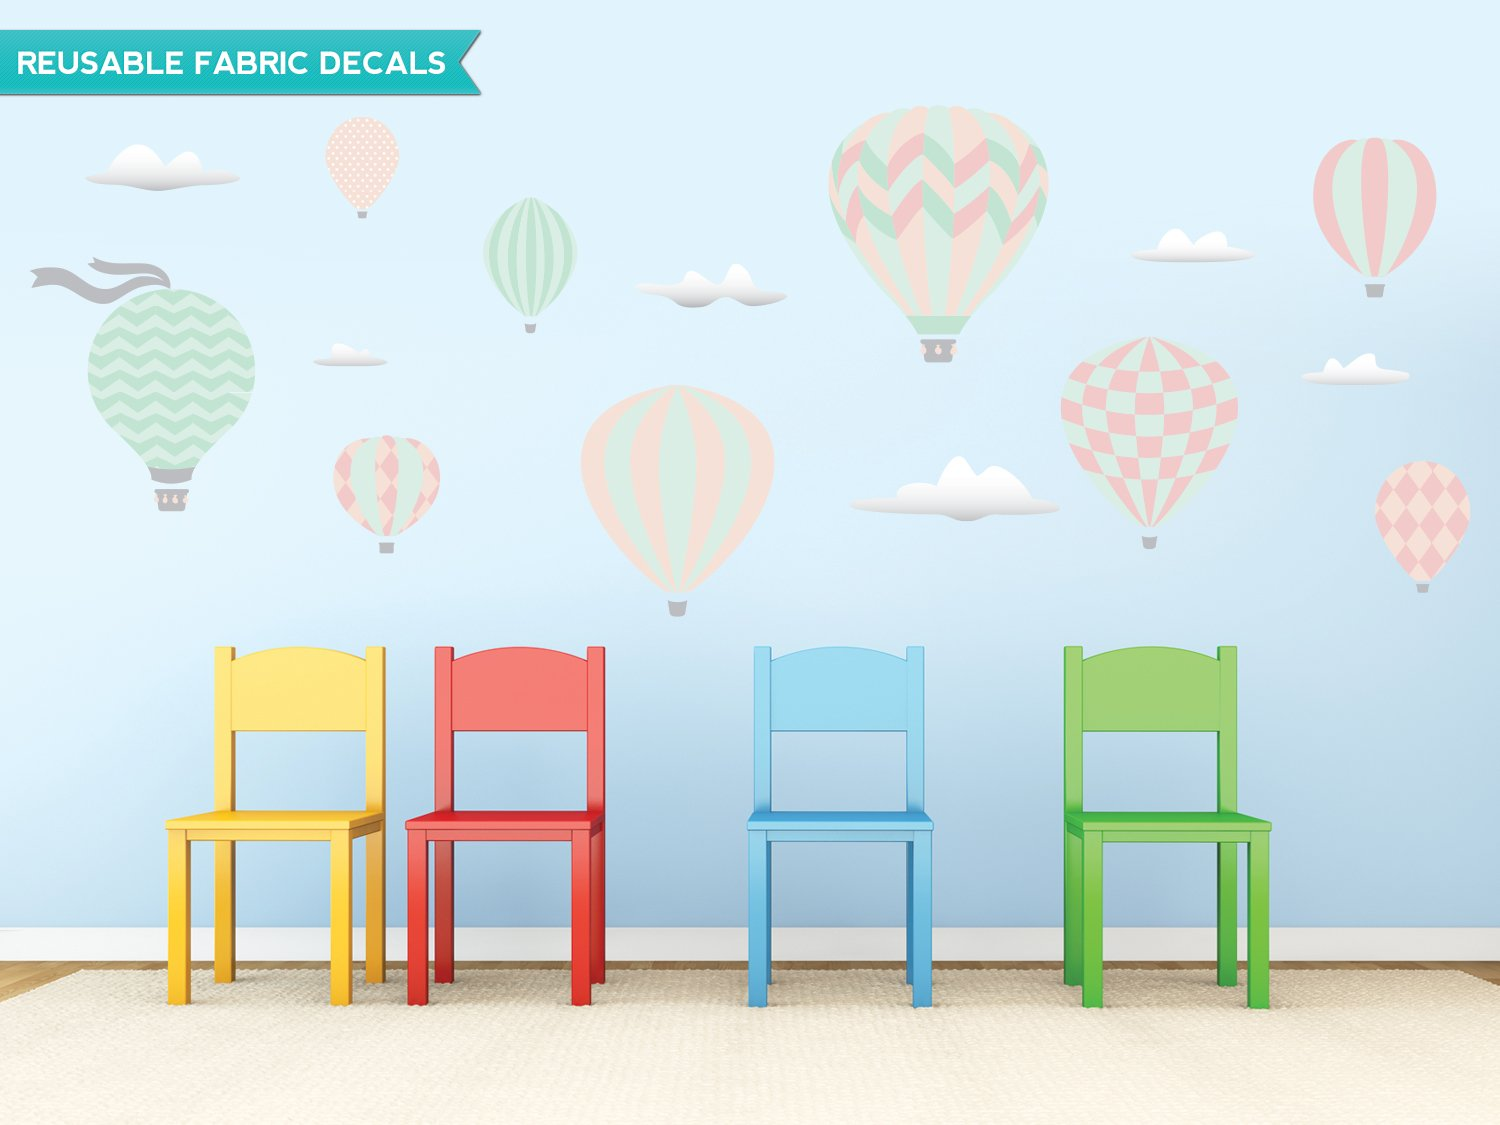 Amazon: Sunny Decals Hot Air Balloons Fabric Wall Decals, Standard,  Pastel: Home & Kitchen